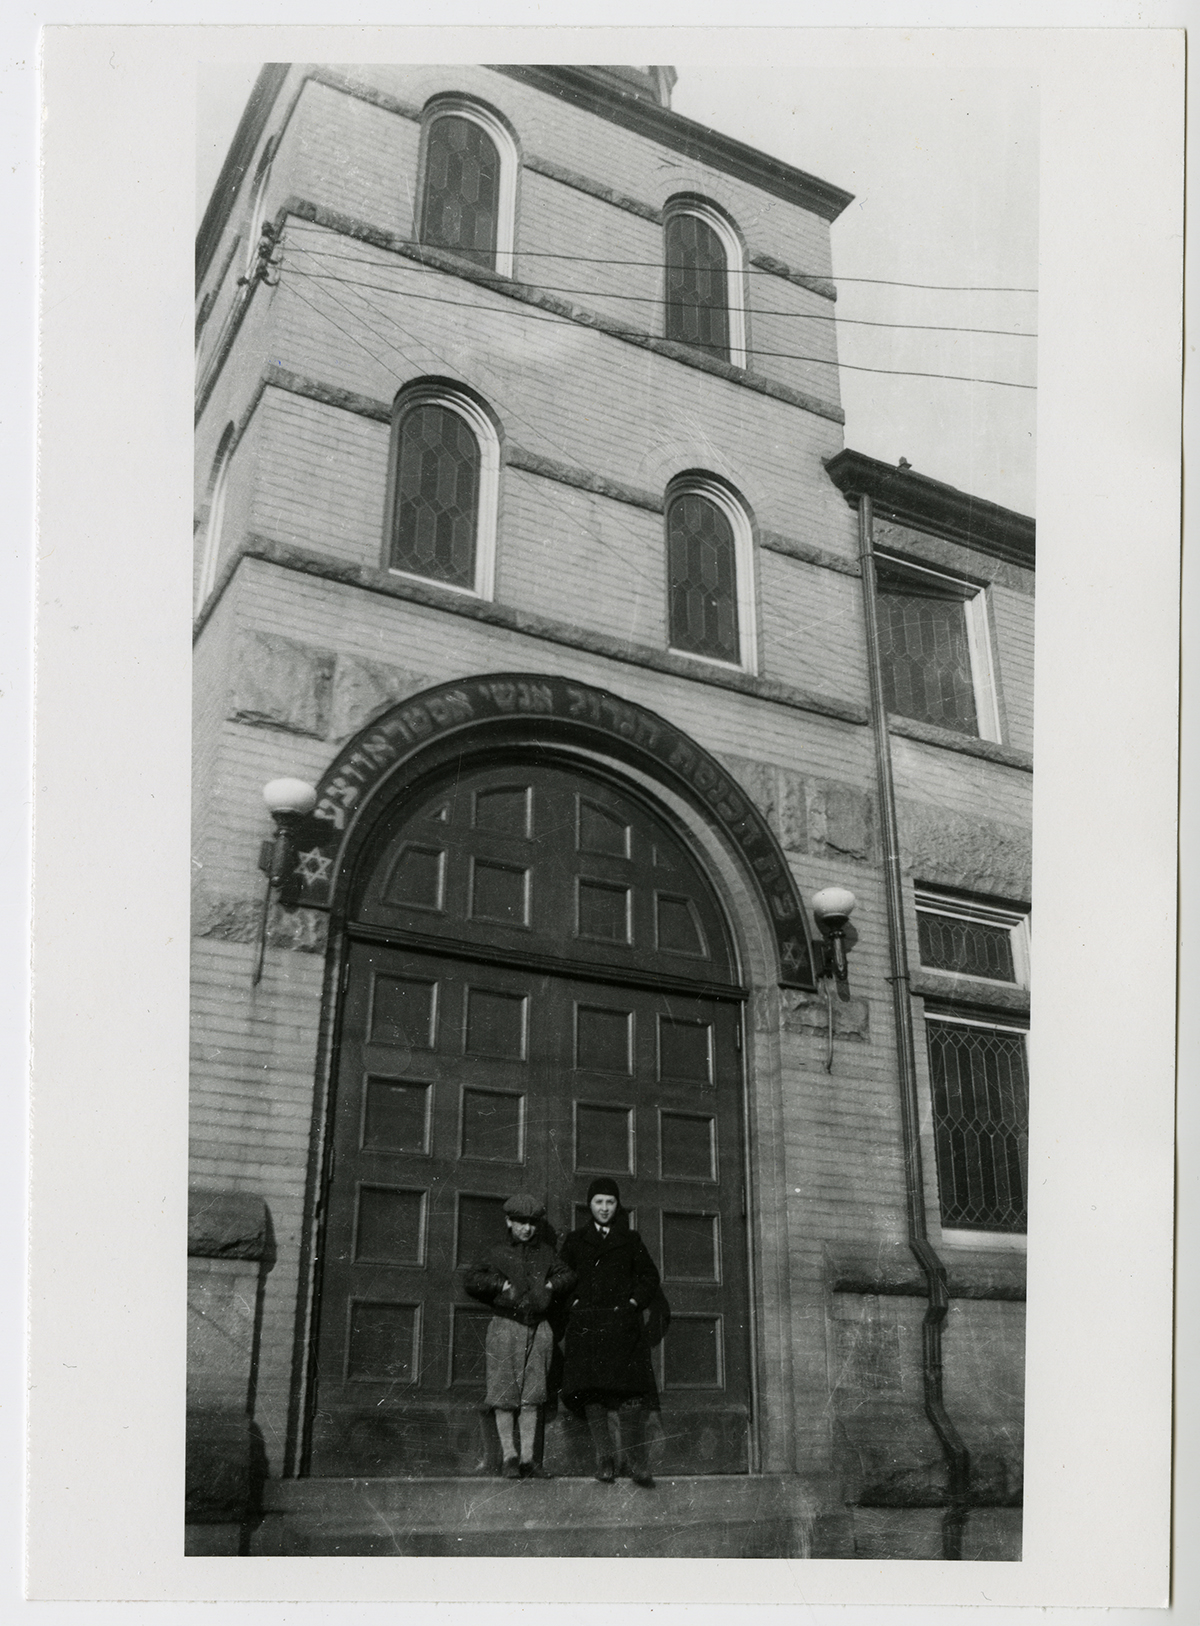 Gordon Perlmutter and Gurion Hyman at the entrance of the Ostrovtzer Synagogue in 1938. Both Perlmutter and Hyman grew up in the area and later worked there too. Perlmutter became a dentist in the community, and Hyman worked in the family business and helped operate Hyman's Art and Book Shoppe, located on Spadina Avenue.   OJA, item 1180.